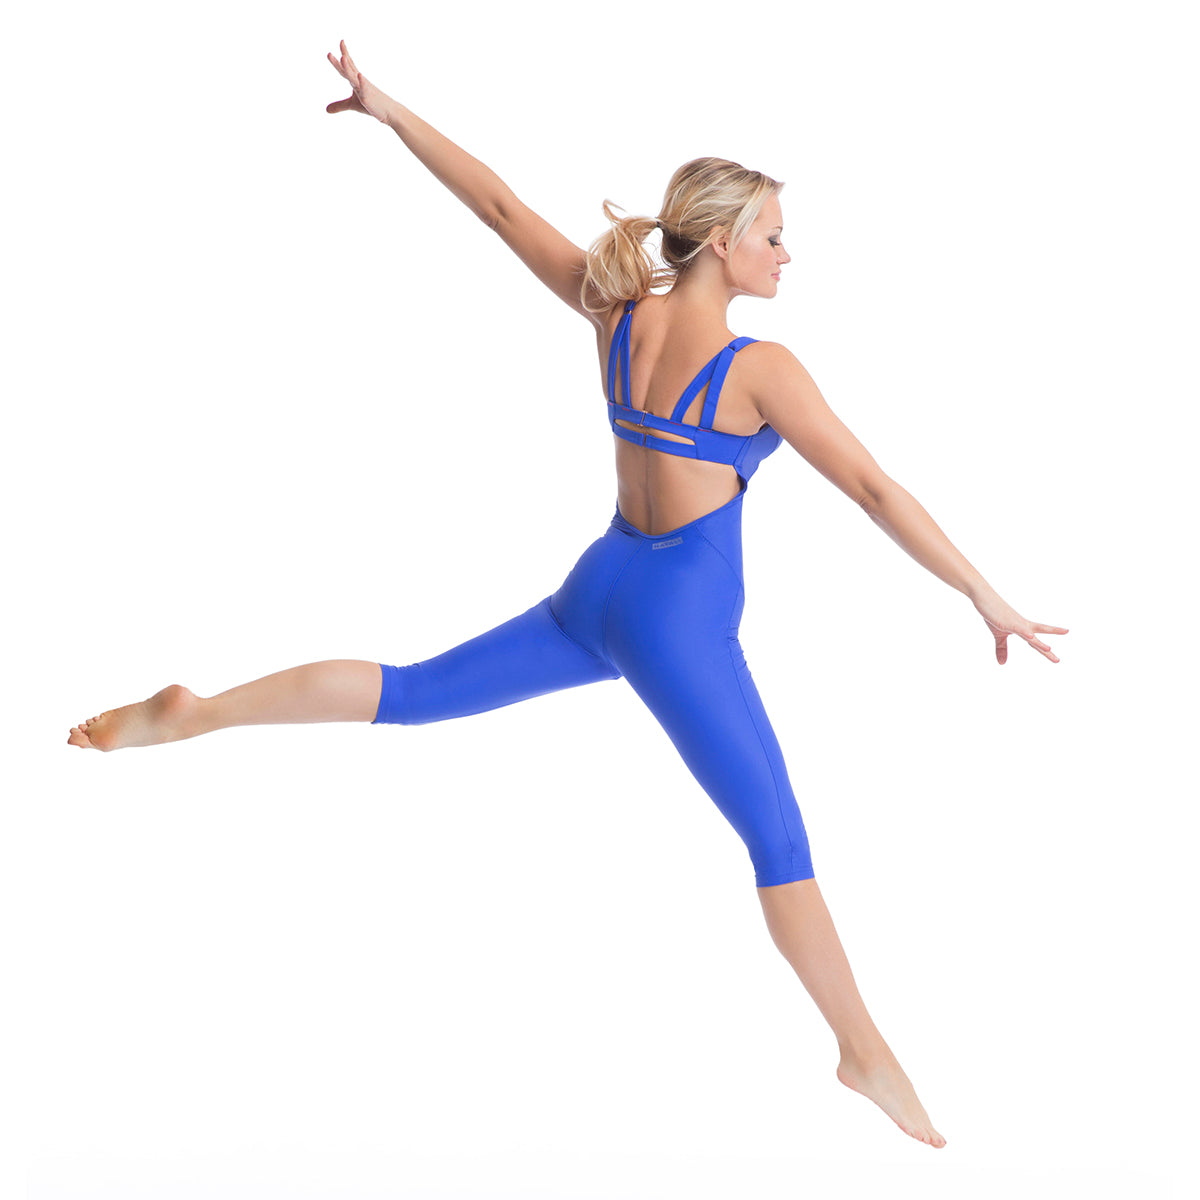 BRIGHTON 1PC JUMPSUIT // INDIGO - Nayali - Activewear for D Cup & Up